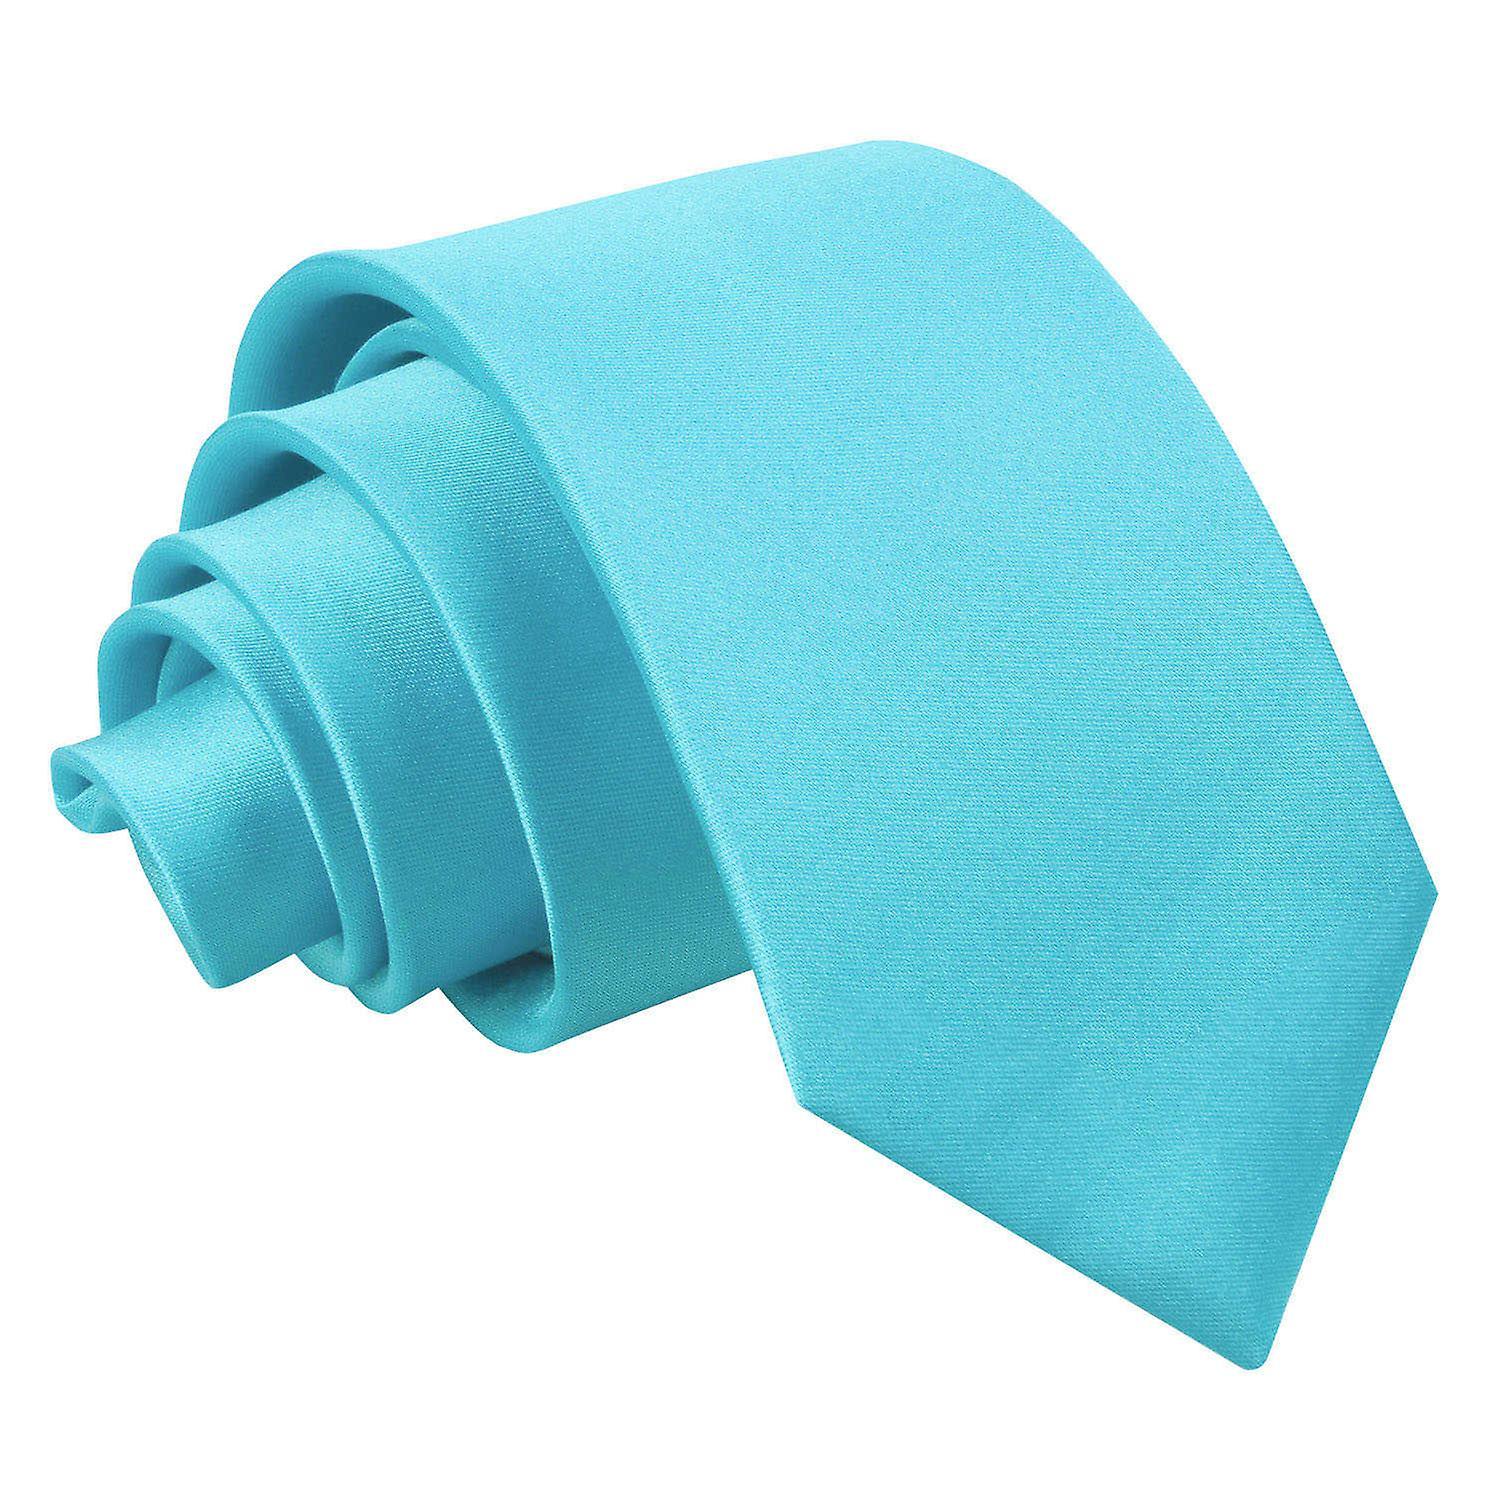 Plain Robin's Egg Blue Satin Slim Tie